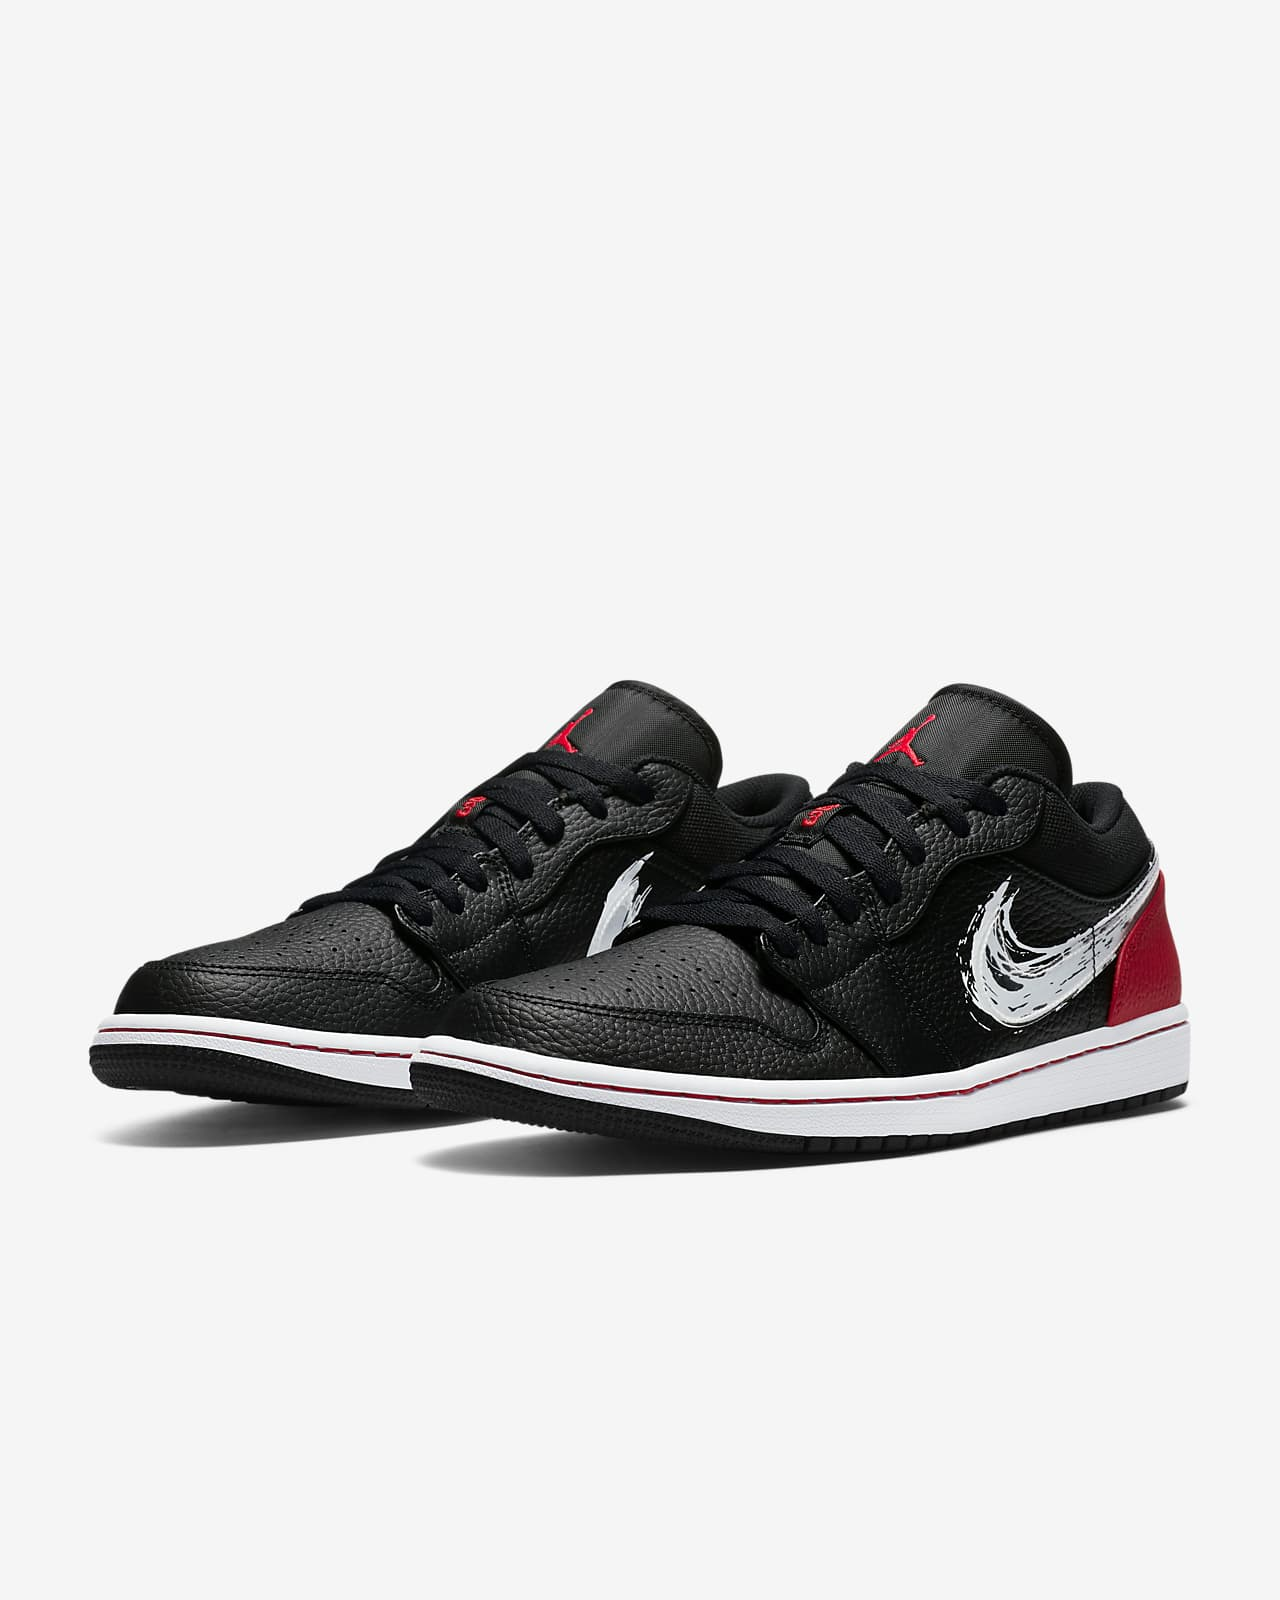 air jordan 1 low red white black